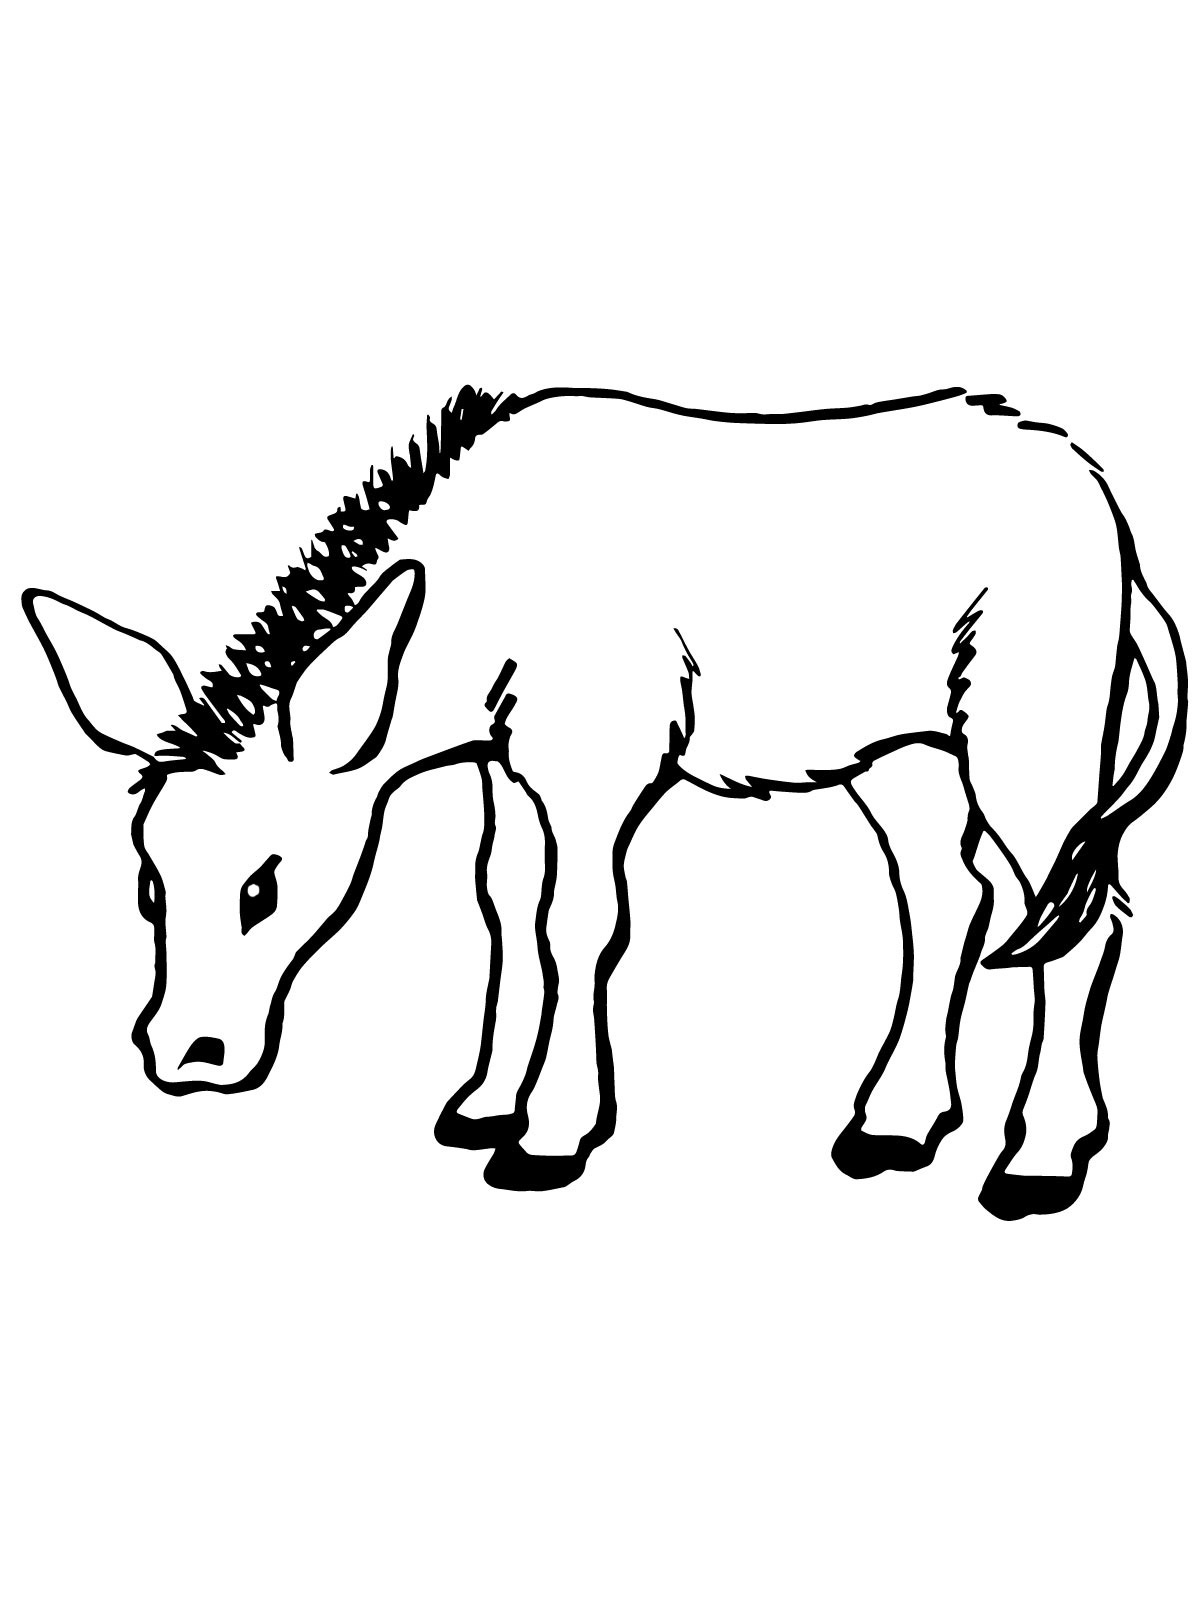 donkey pictures to print free printable donkey coloring pages for kids donkey print pictures to